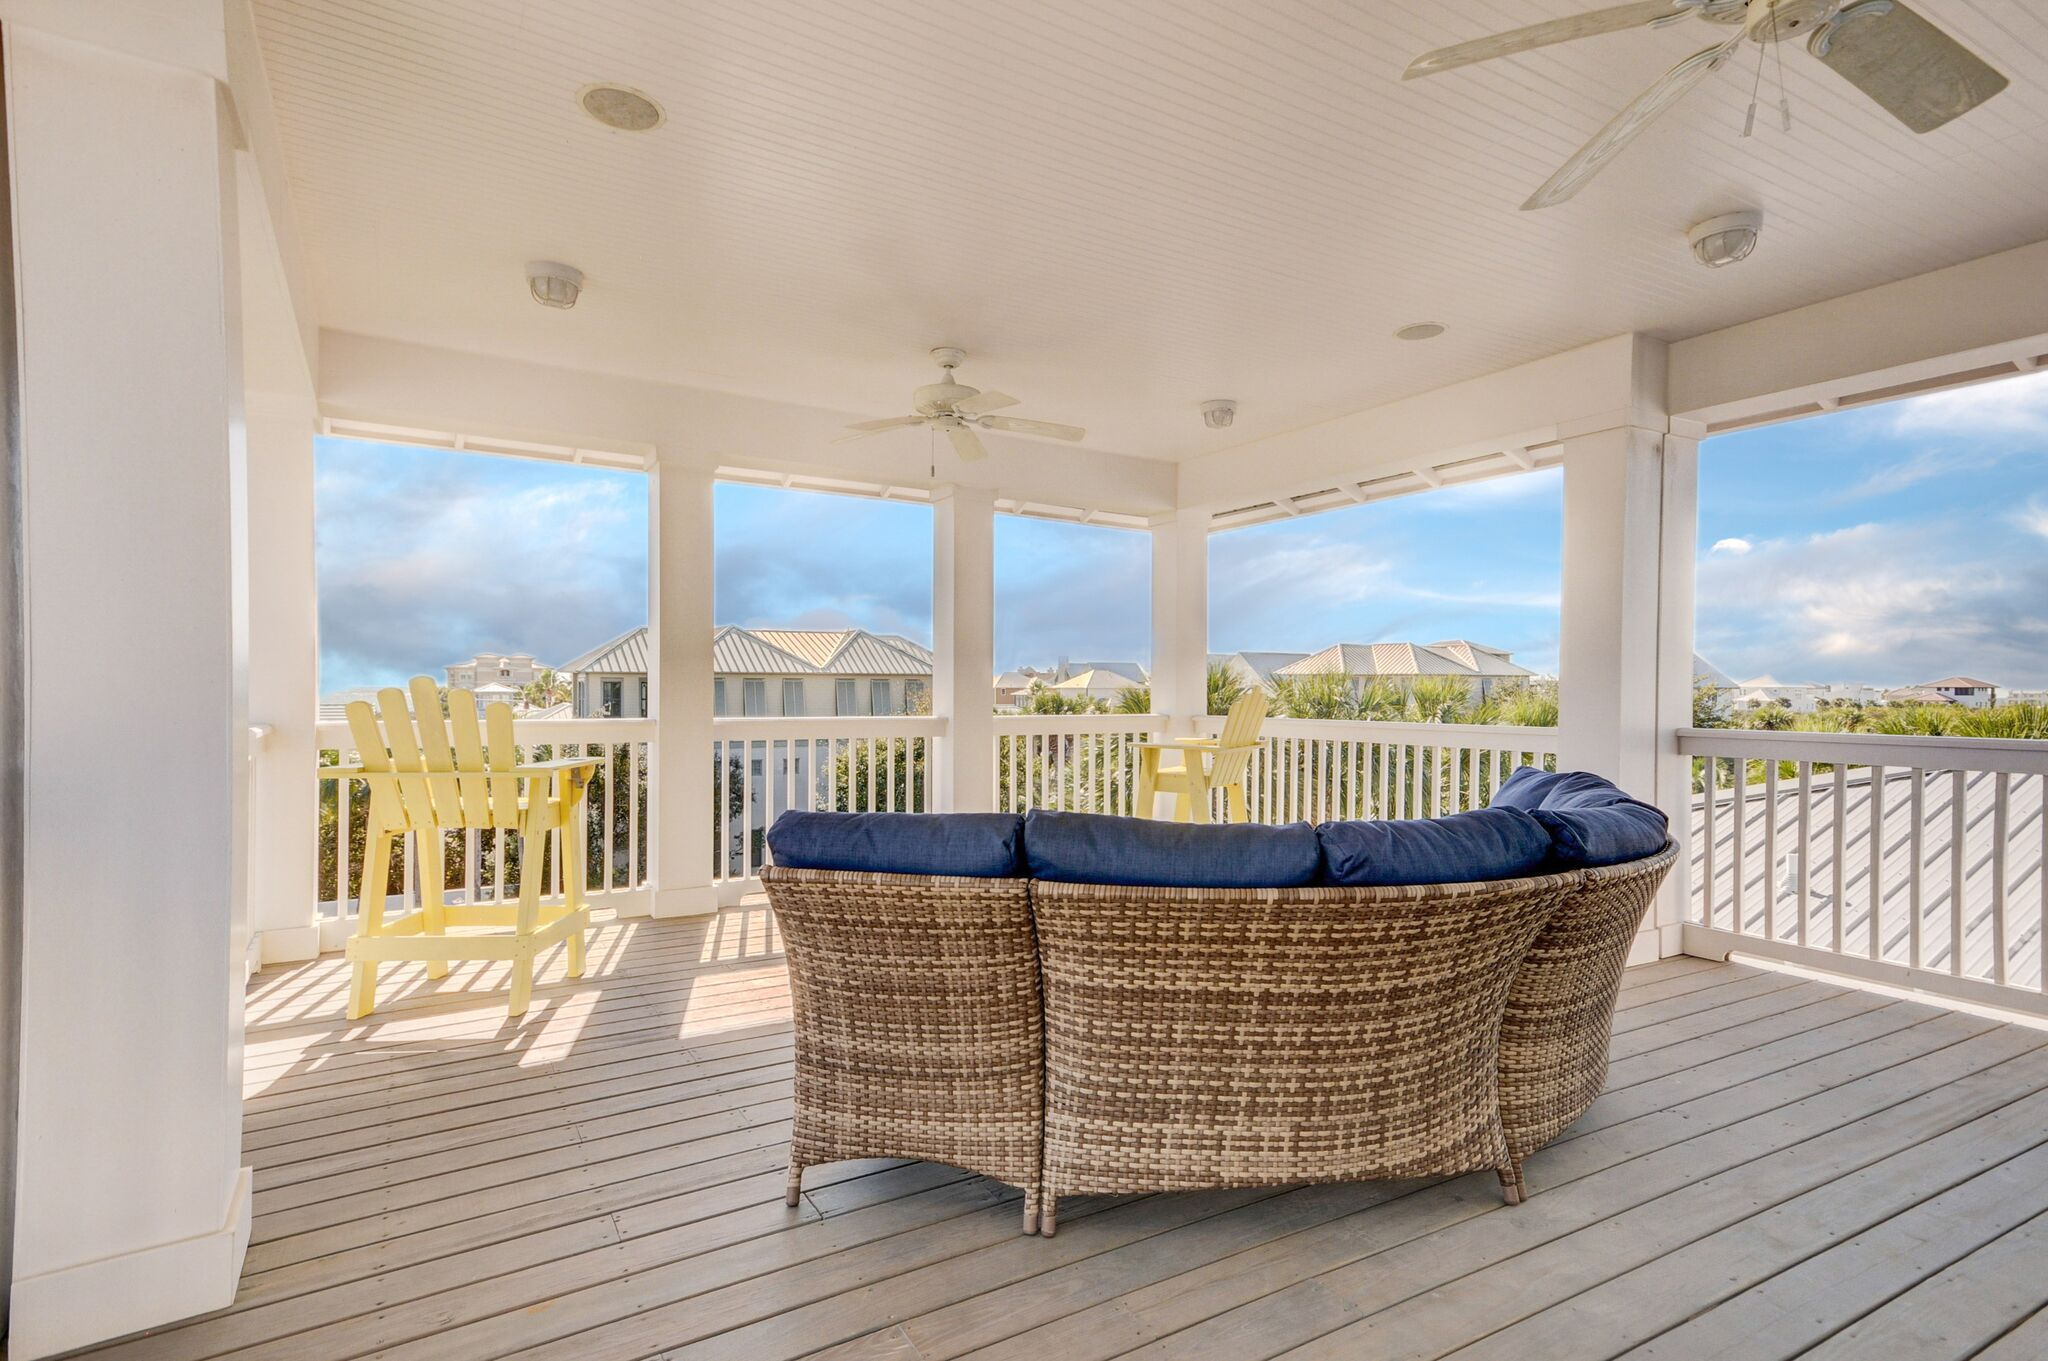 Phenomenal views of the Gulf from this 3rd Floor Deck, including Alys Beach to the West and Rosemary Beach to the East